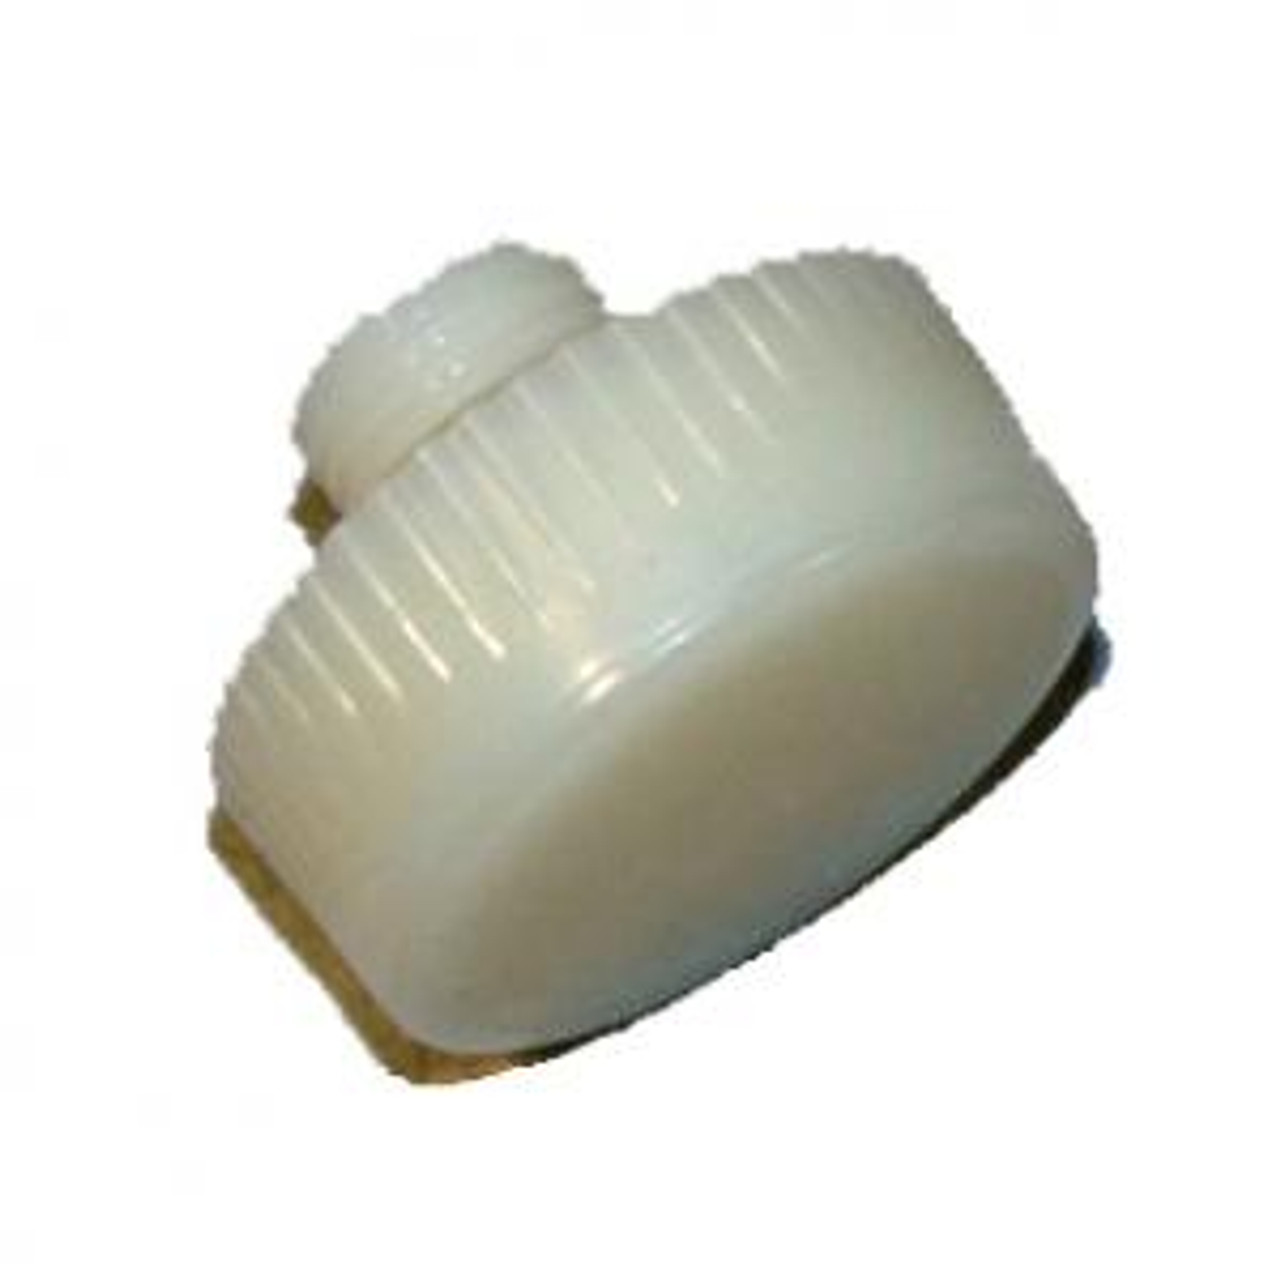 """1.5"""" Hard White nylon replacement Tip for DB 150 or NT150 hammers. One tip."""